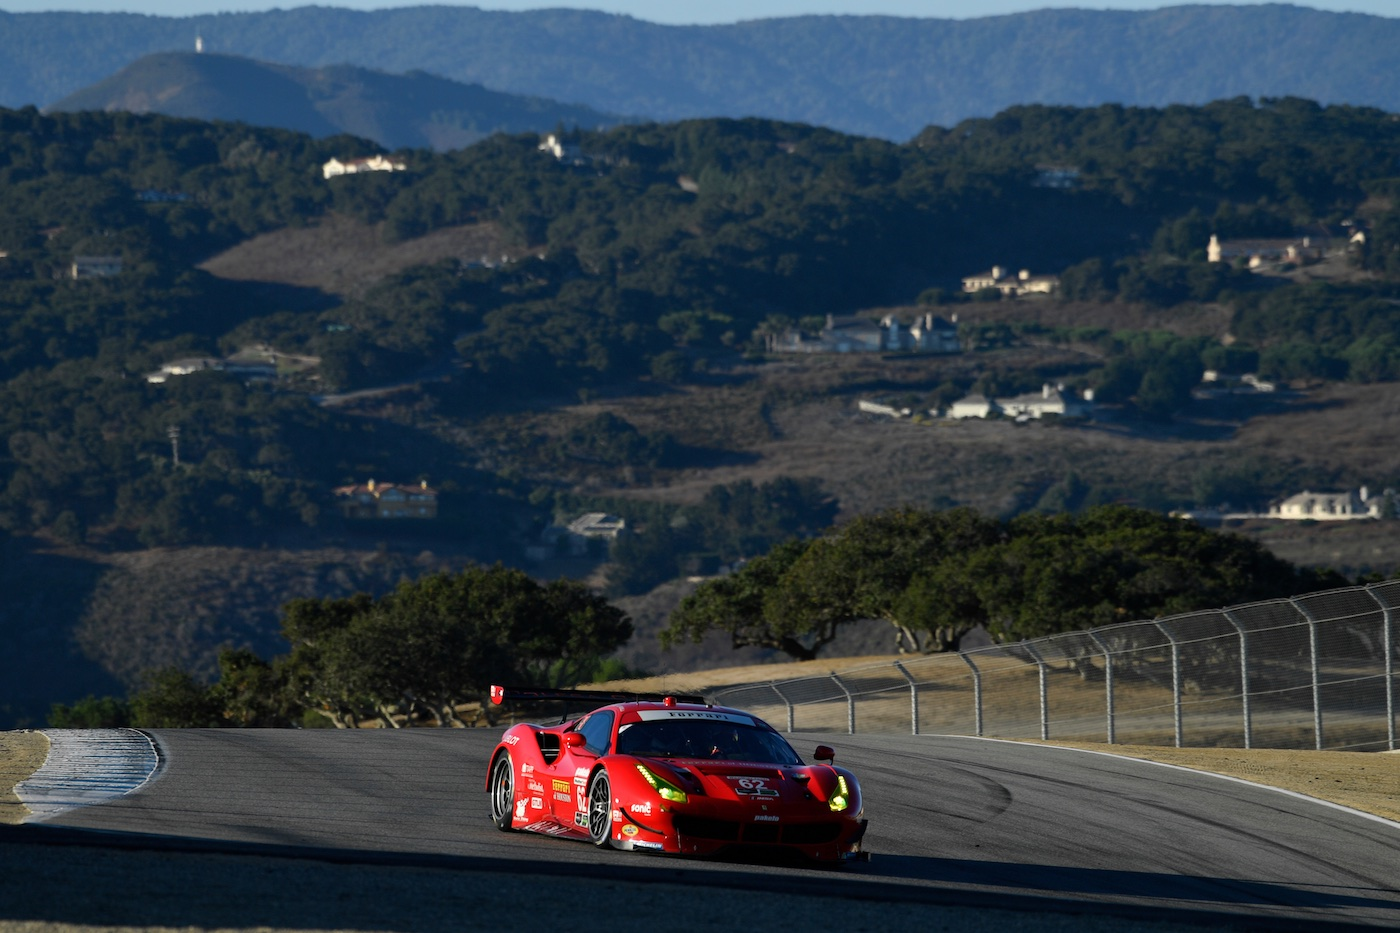 Risi paces morning warm-up